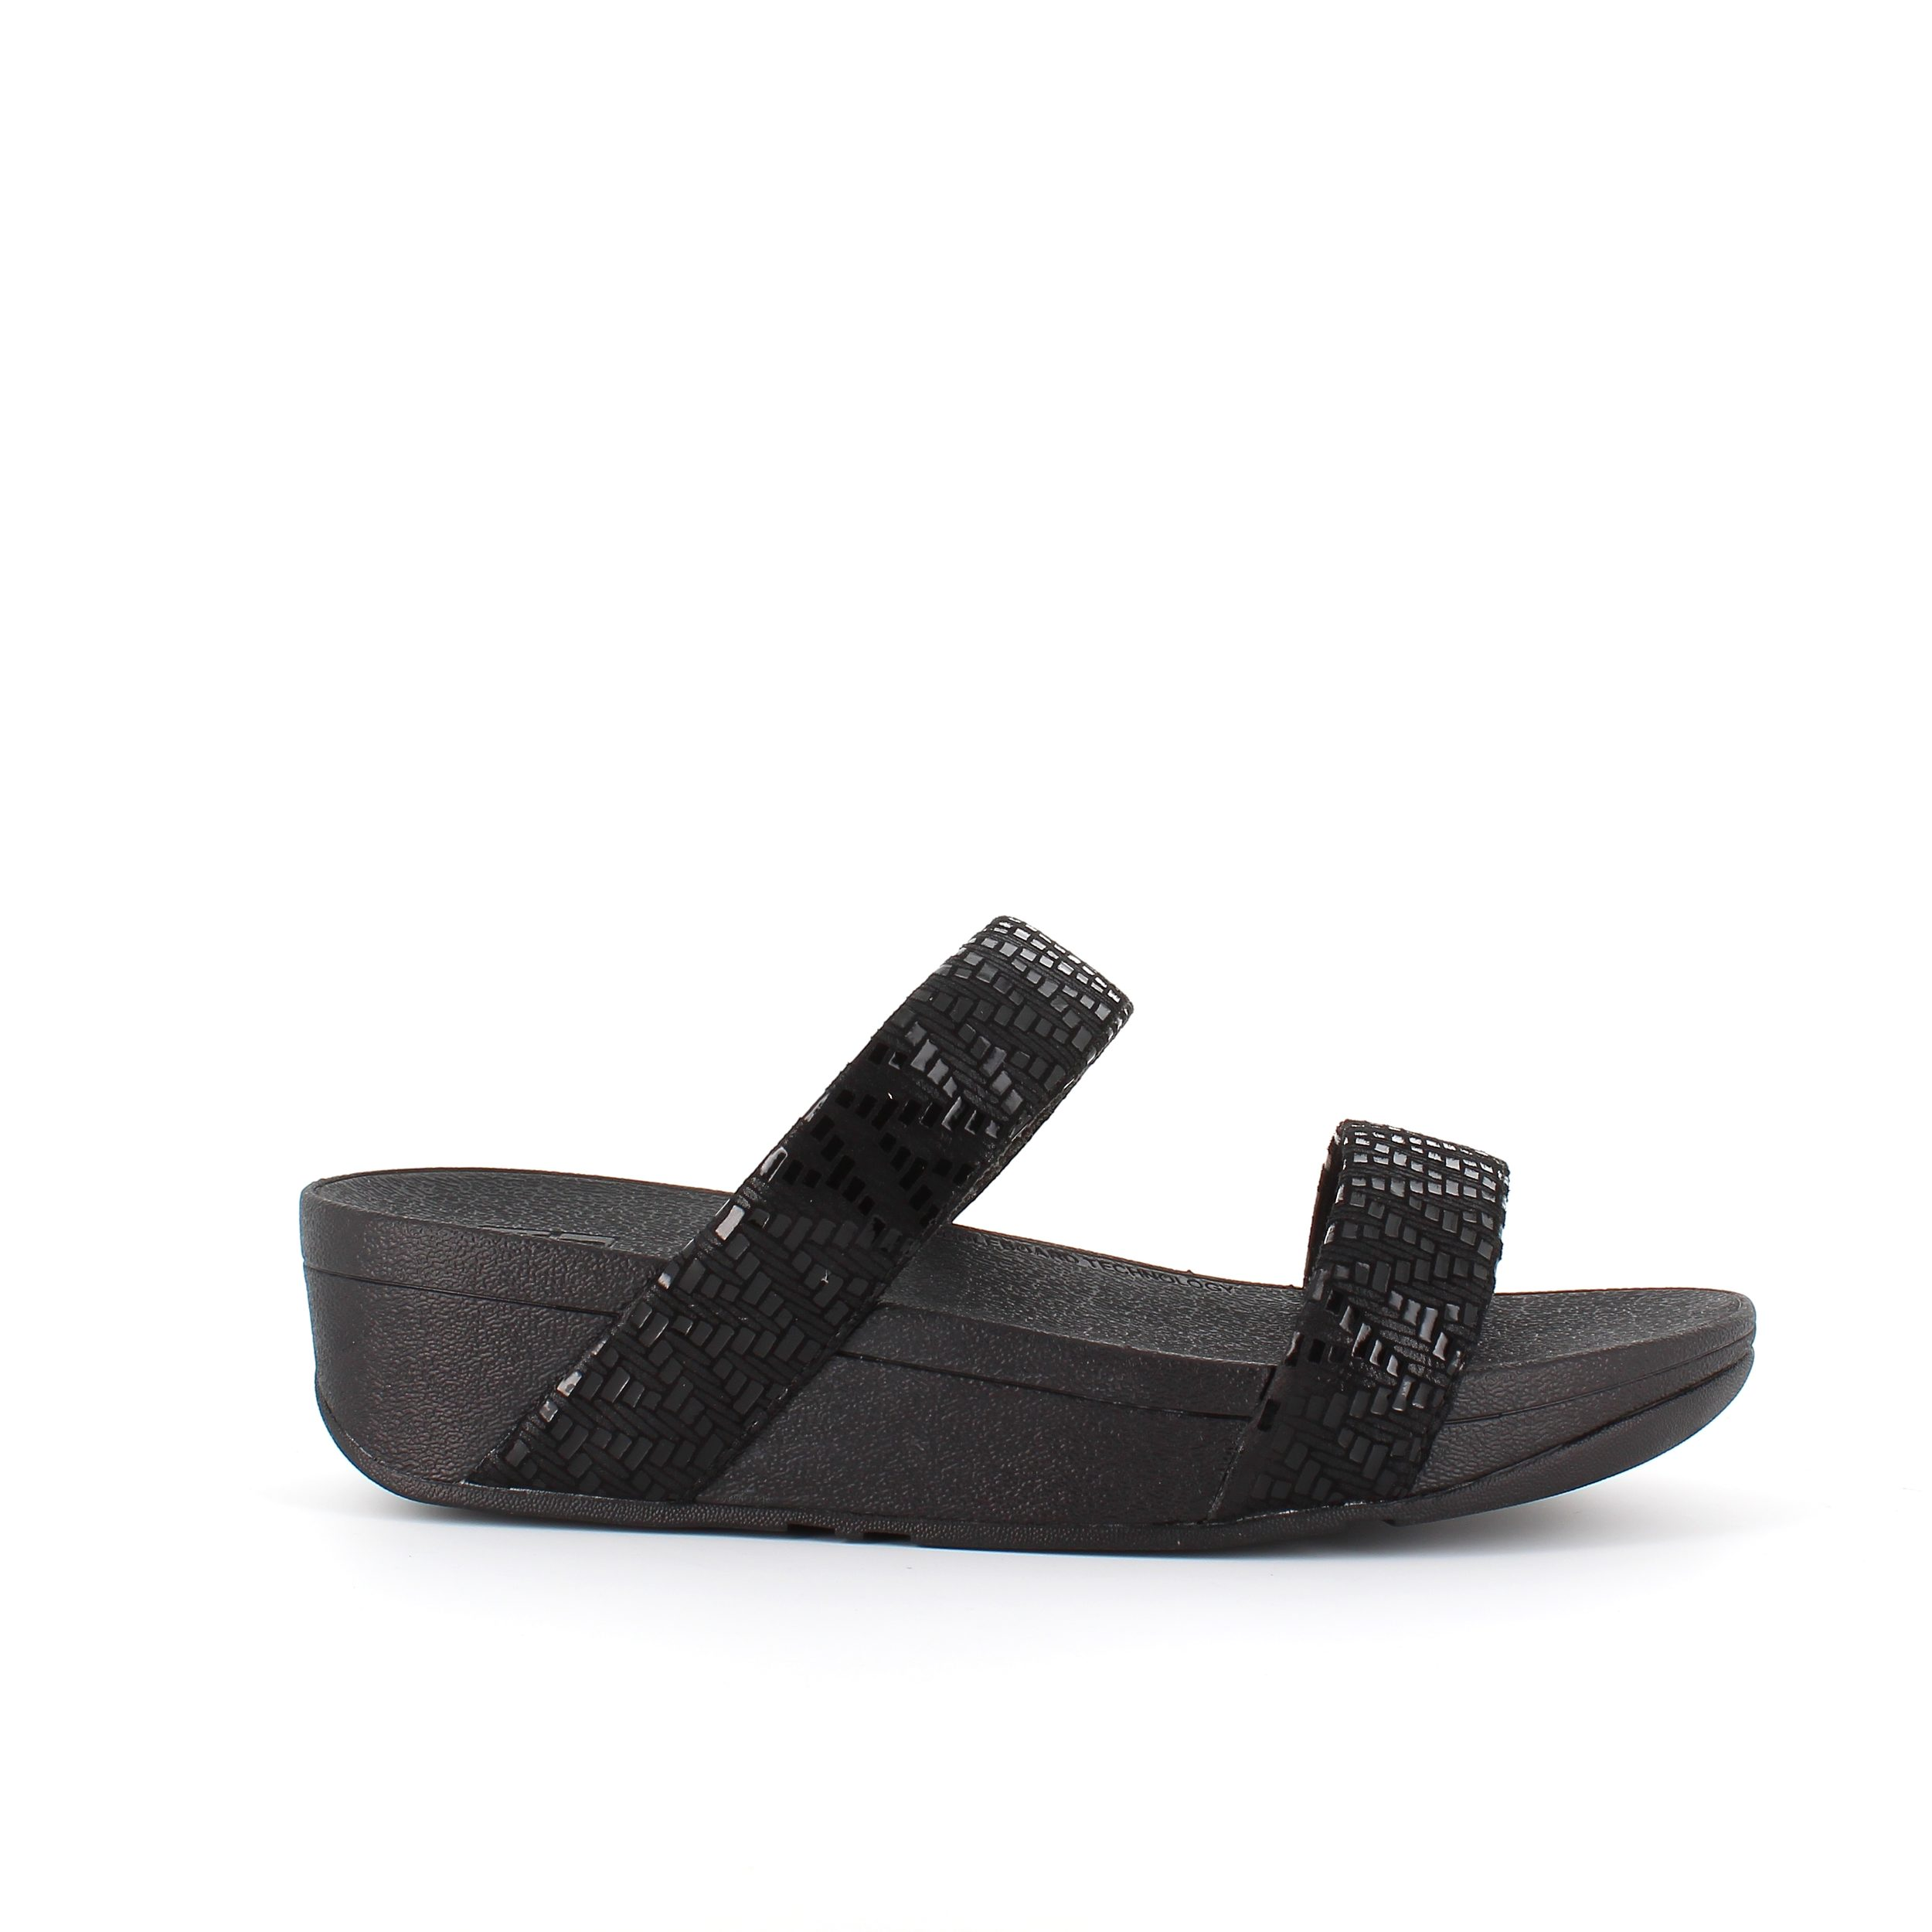 Image of   Lottie Chevron slip in sandal fra Fitflop - 39